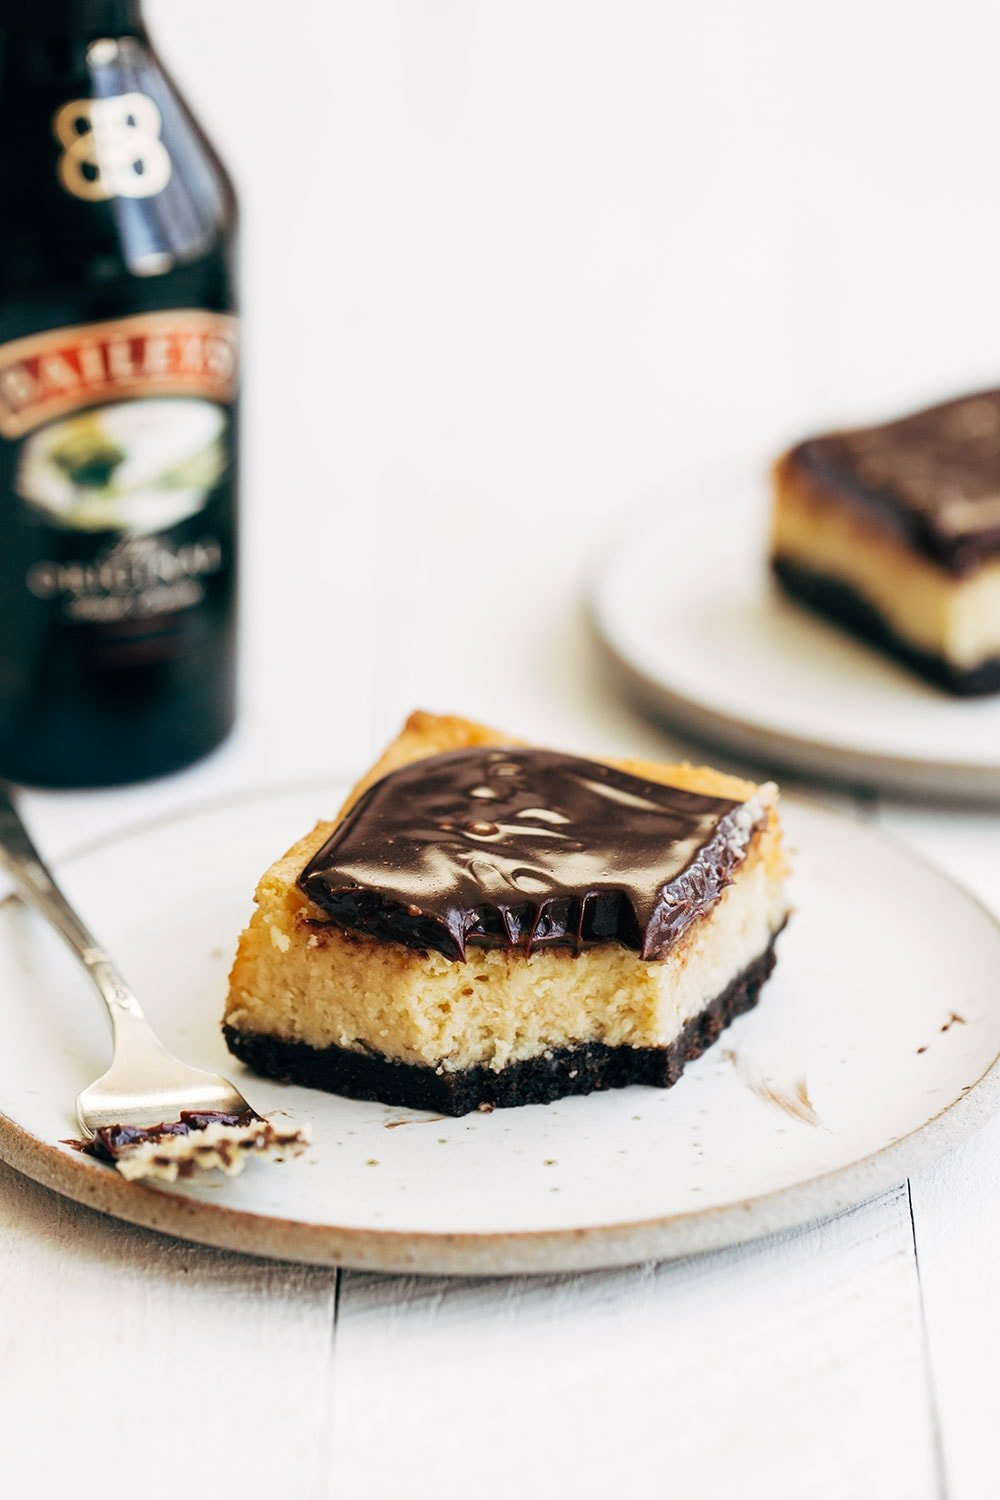 Bailey's cheesecake bar on a plate with a bottle of Bailey's Irish Cream